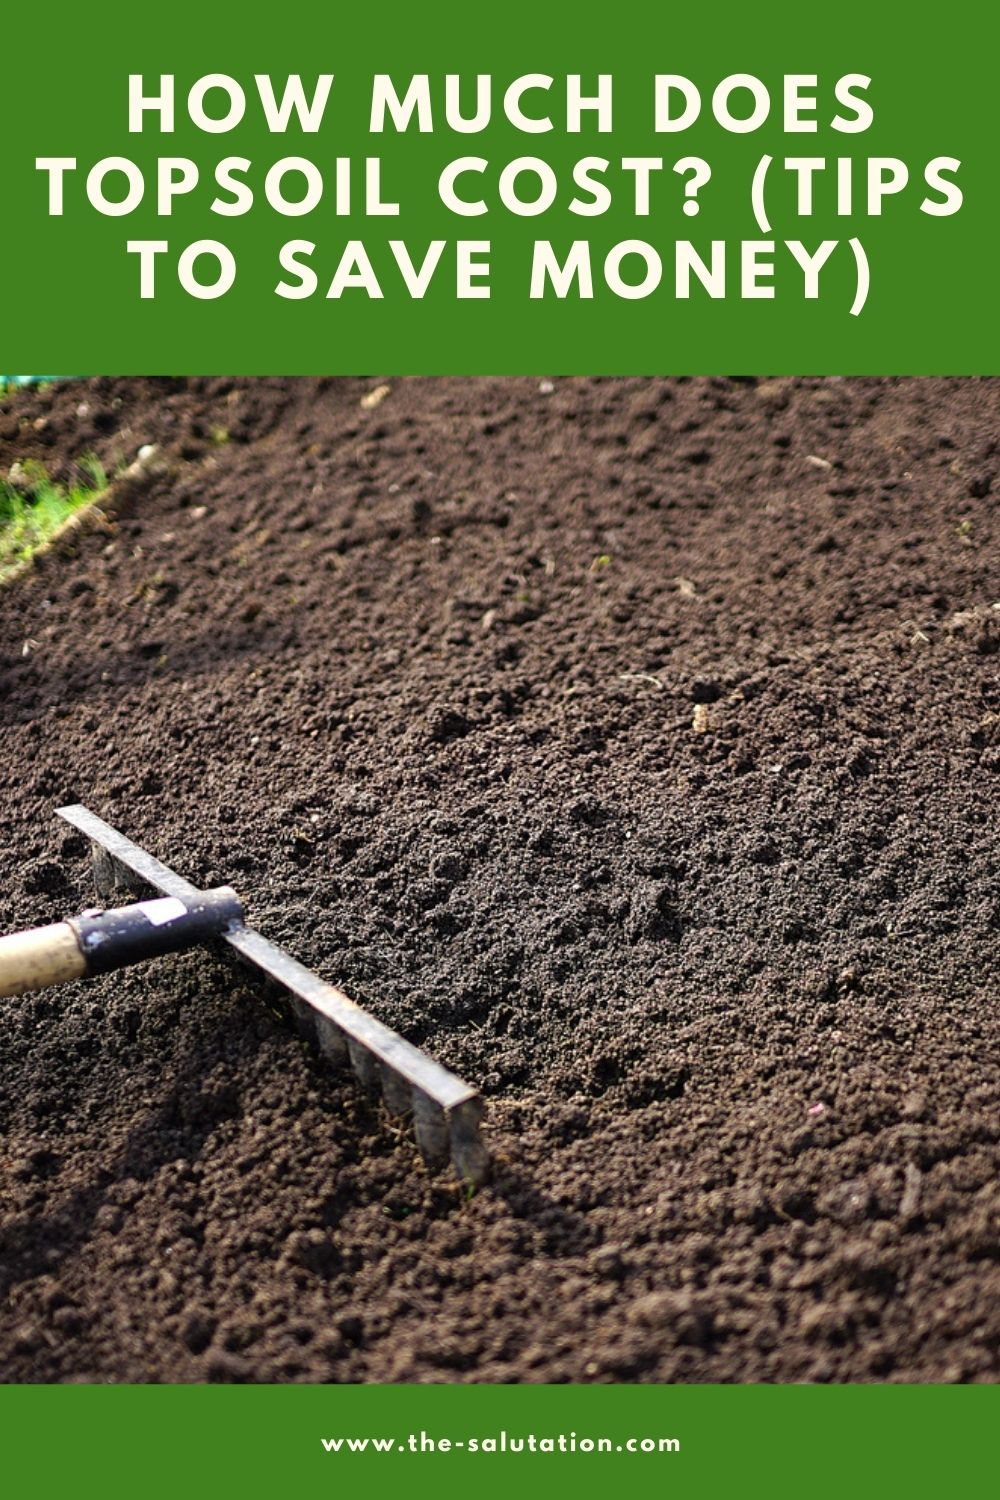 How Much Does Topsoil Cost (Tips to Save Money) 2